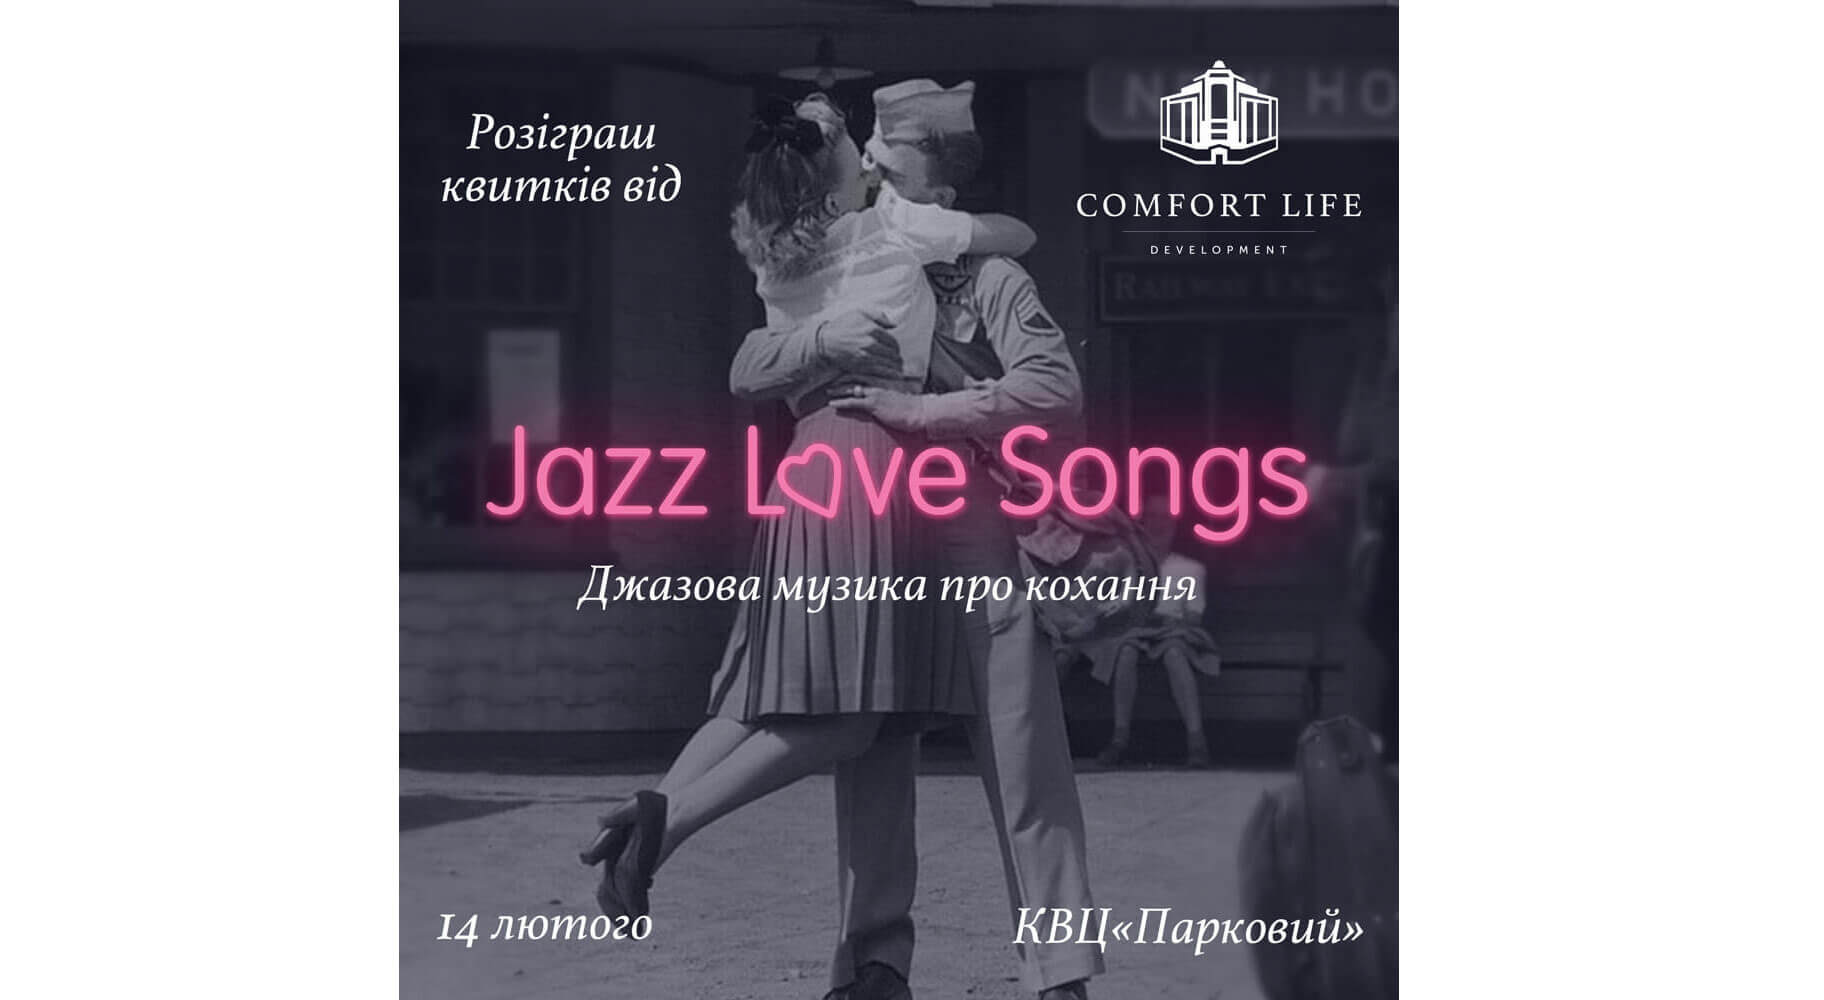 """Comfort Life Development gives 2 tickets to """"Jazz Love Songs"""" for Valentine's Day!"""